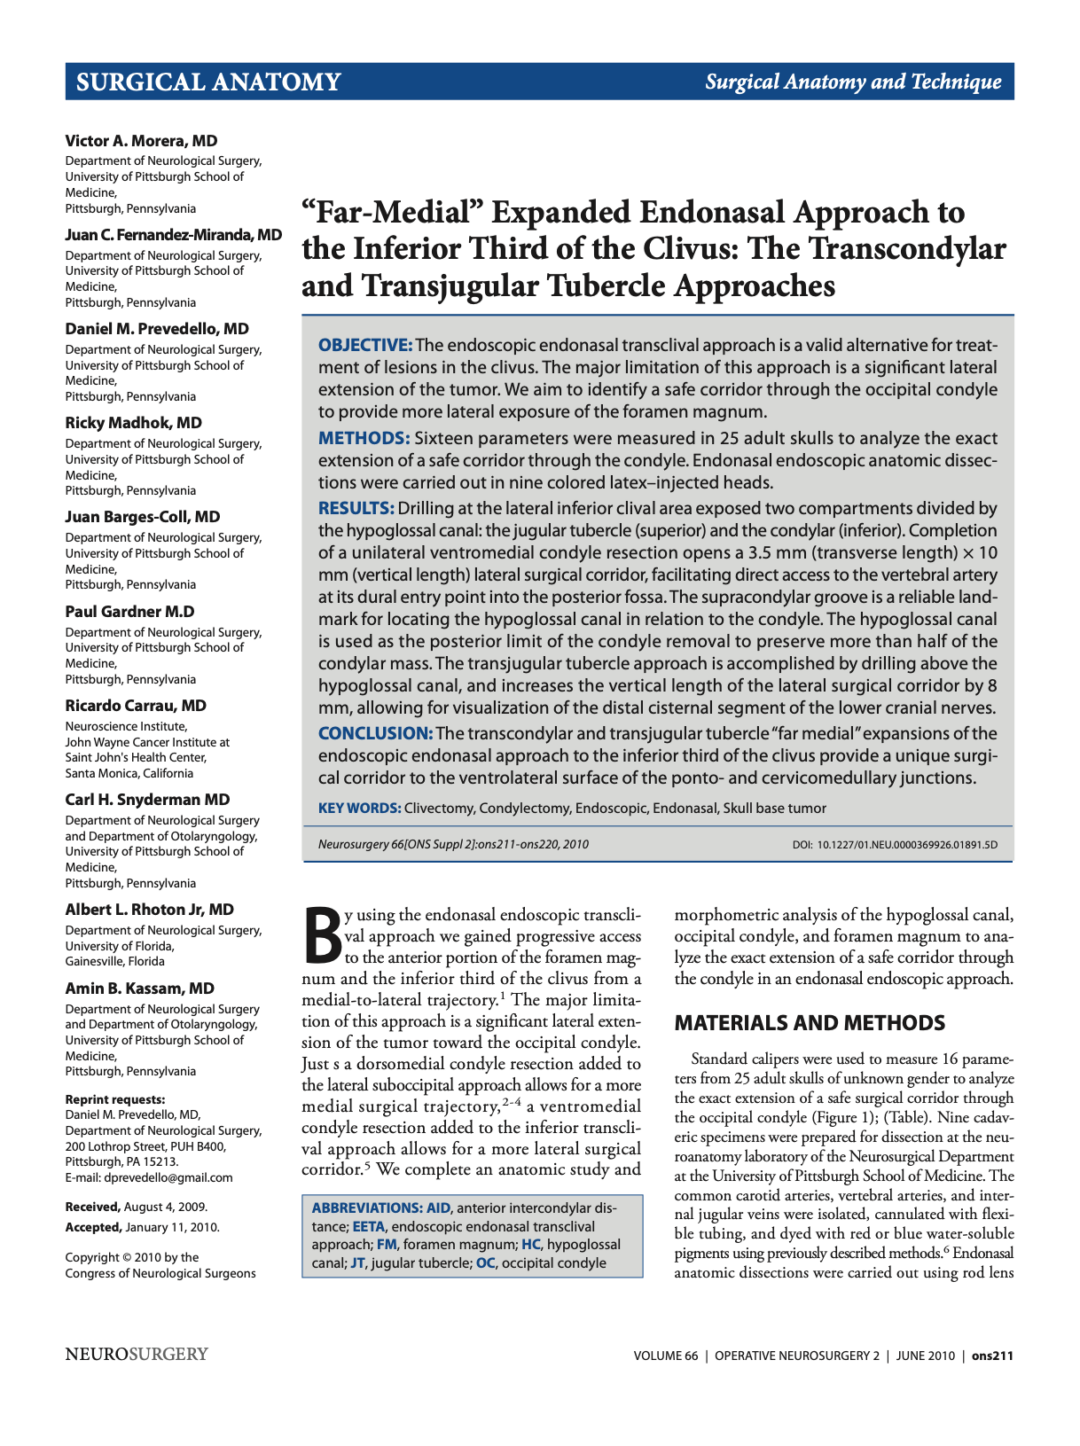 """""""Far-Medial"""" Expanded Endonasal Approach to the Inferior Third of the Clivus: The Transcondylar and Transjugular Tubercle Approaches"""